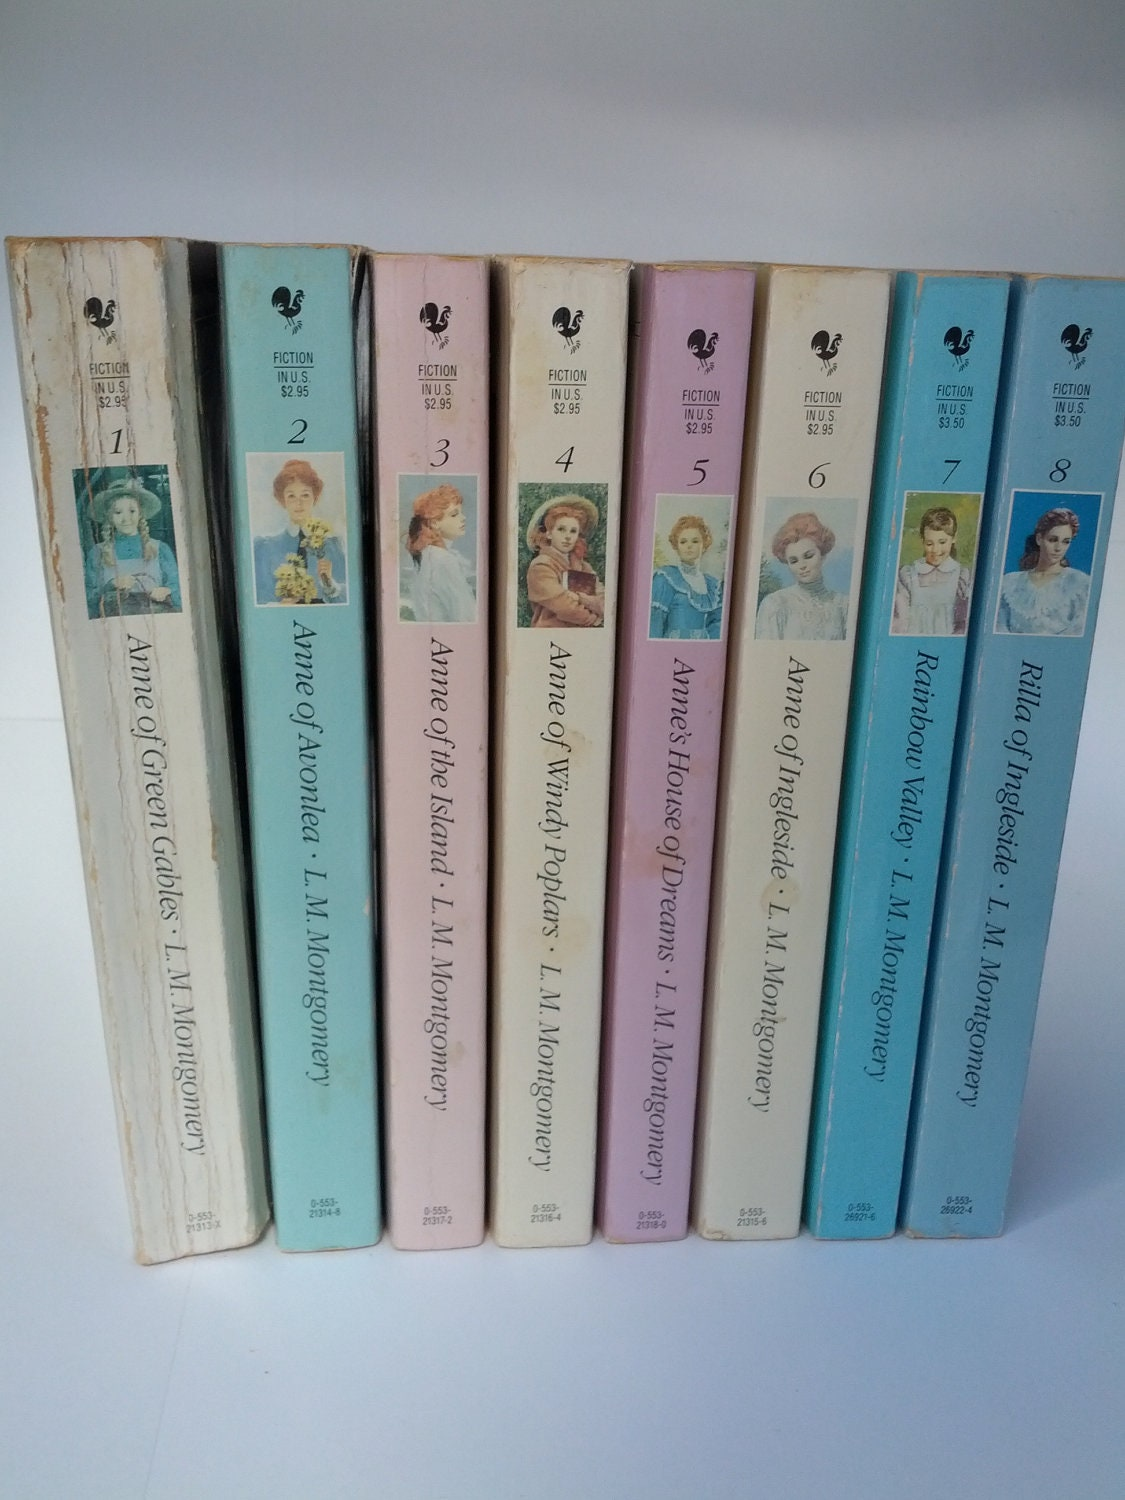 Vintage series of Anne of Green Gables, 1-8